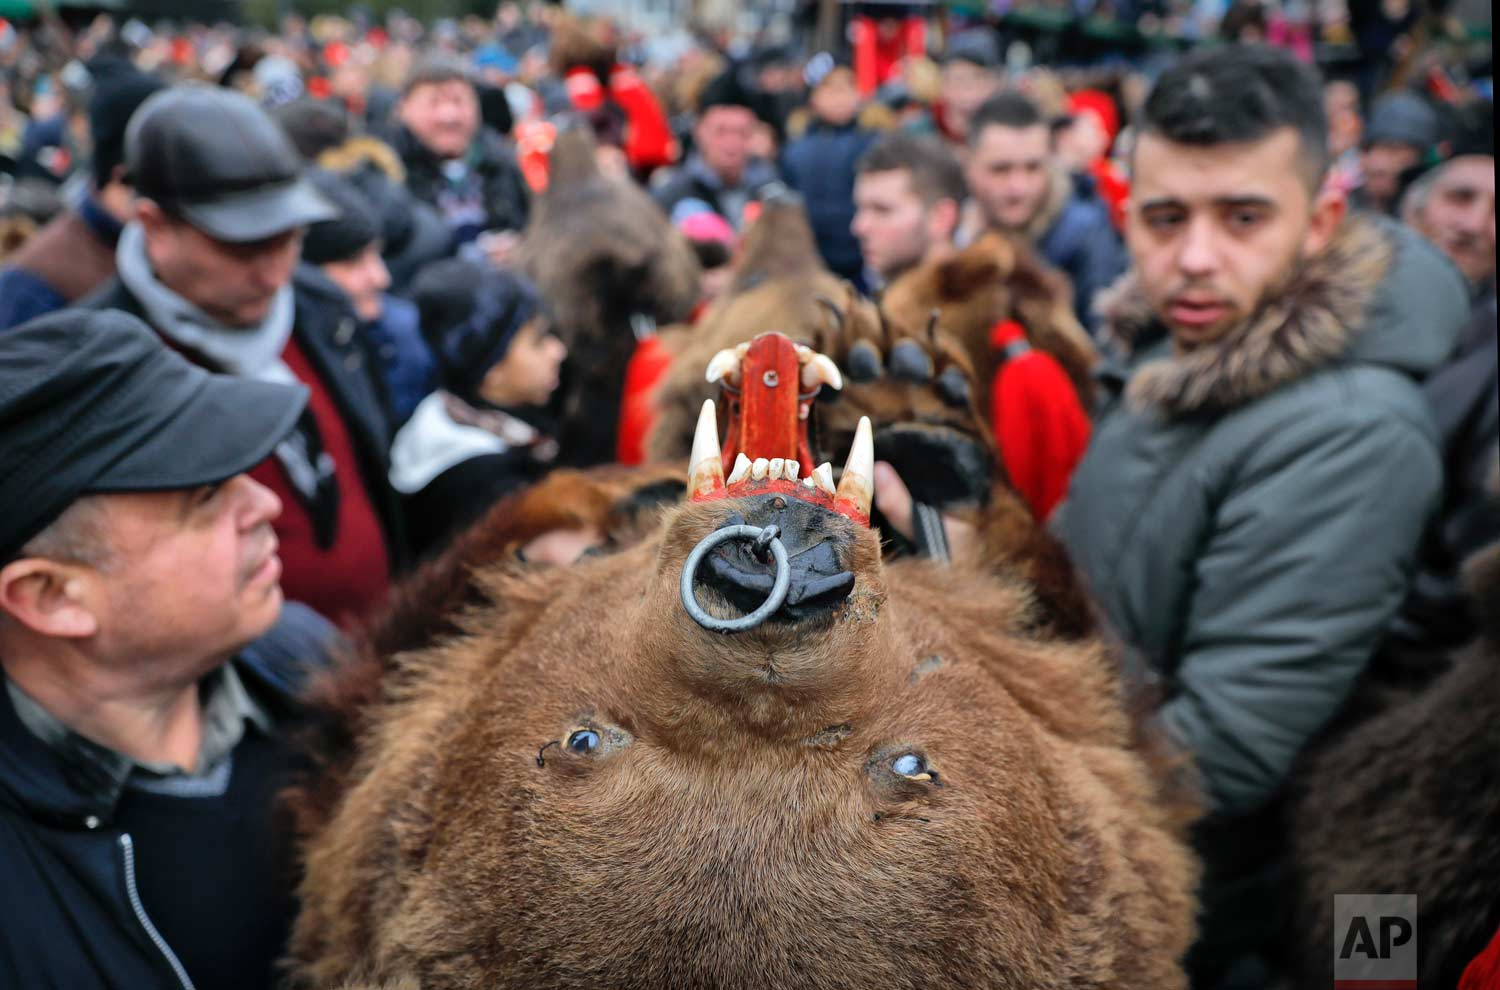 In this Saturday, Dec. 30, 2017, picture people wearing a bear fur costumes make their way through the crowds during an annual bear parade in Comanesti, Romania. (AP Photo/Vadim Ghirda)